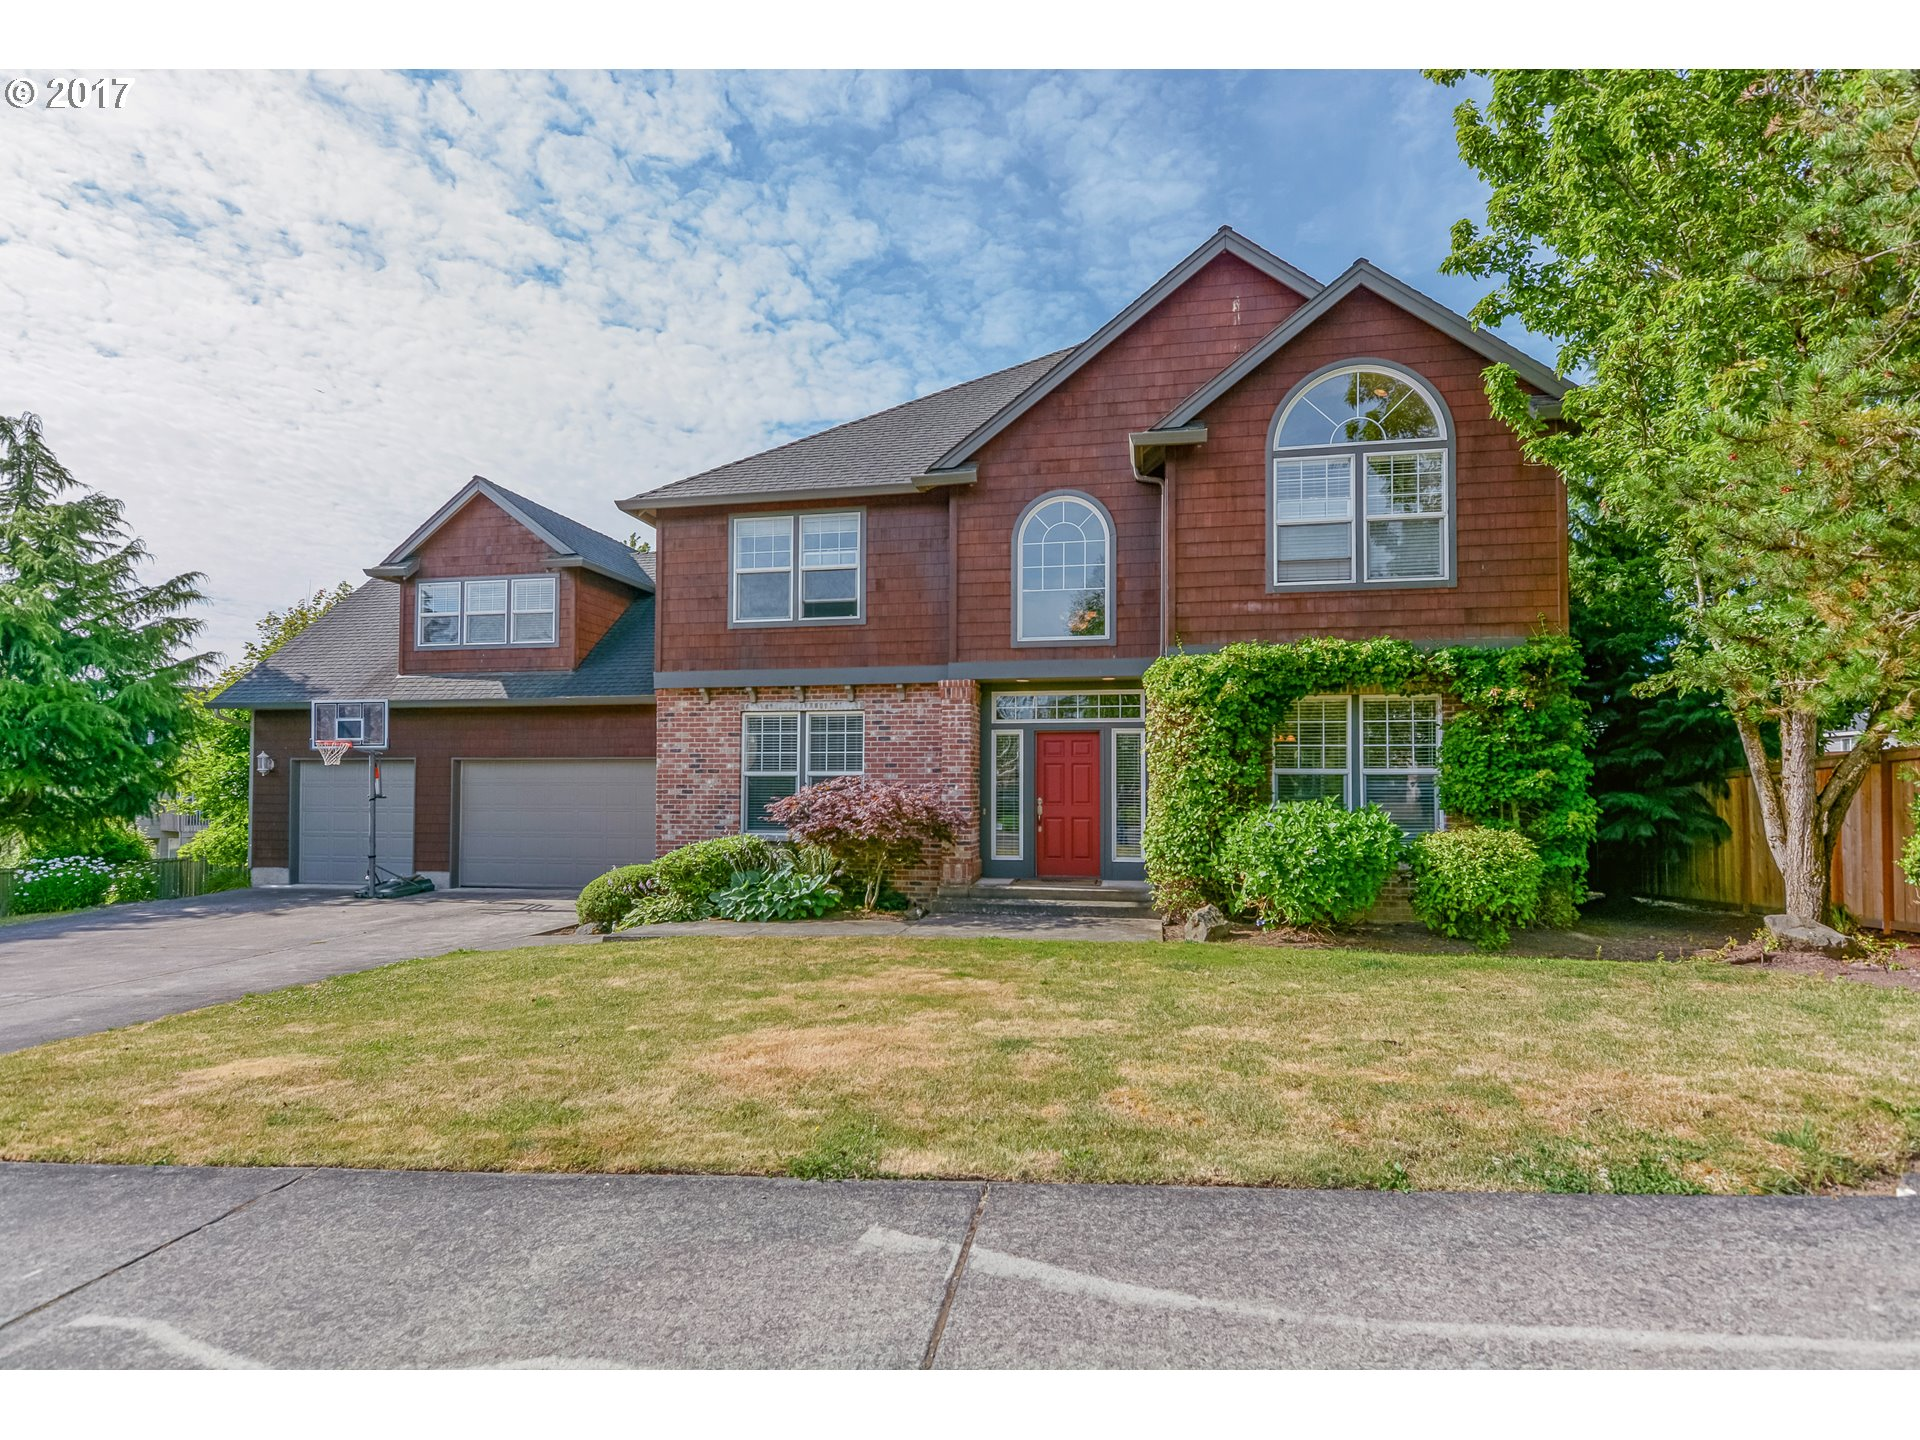 4911 NW ASHLEY HEIGHTS DR, Vancouver, WA 98685